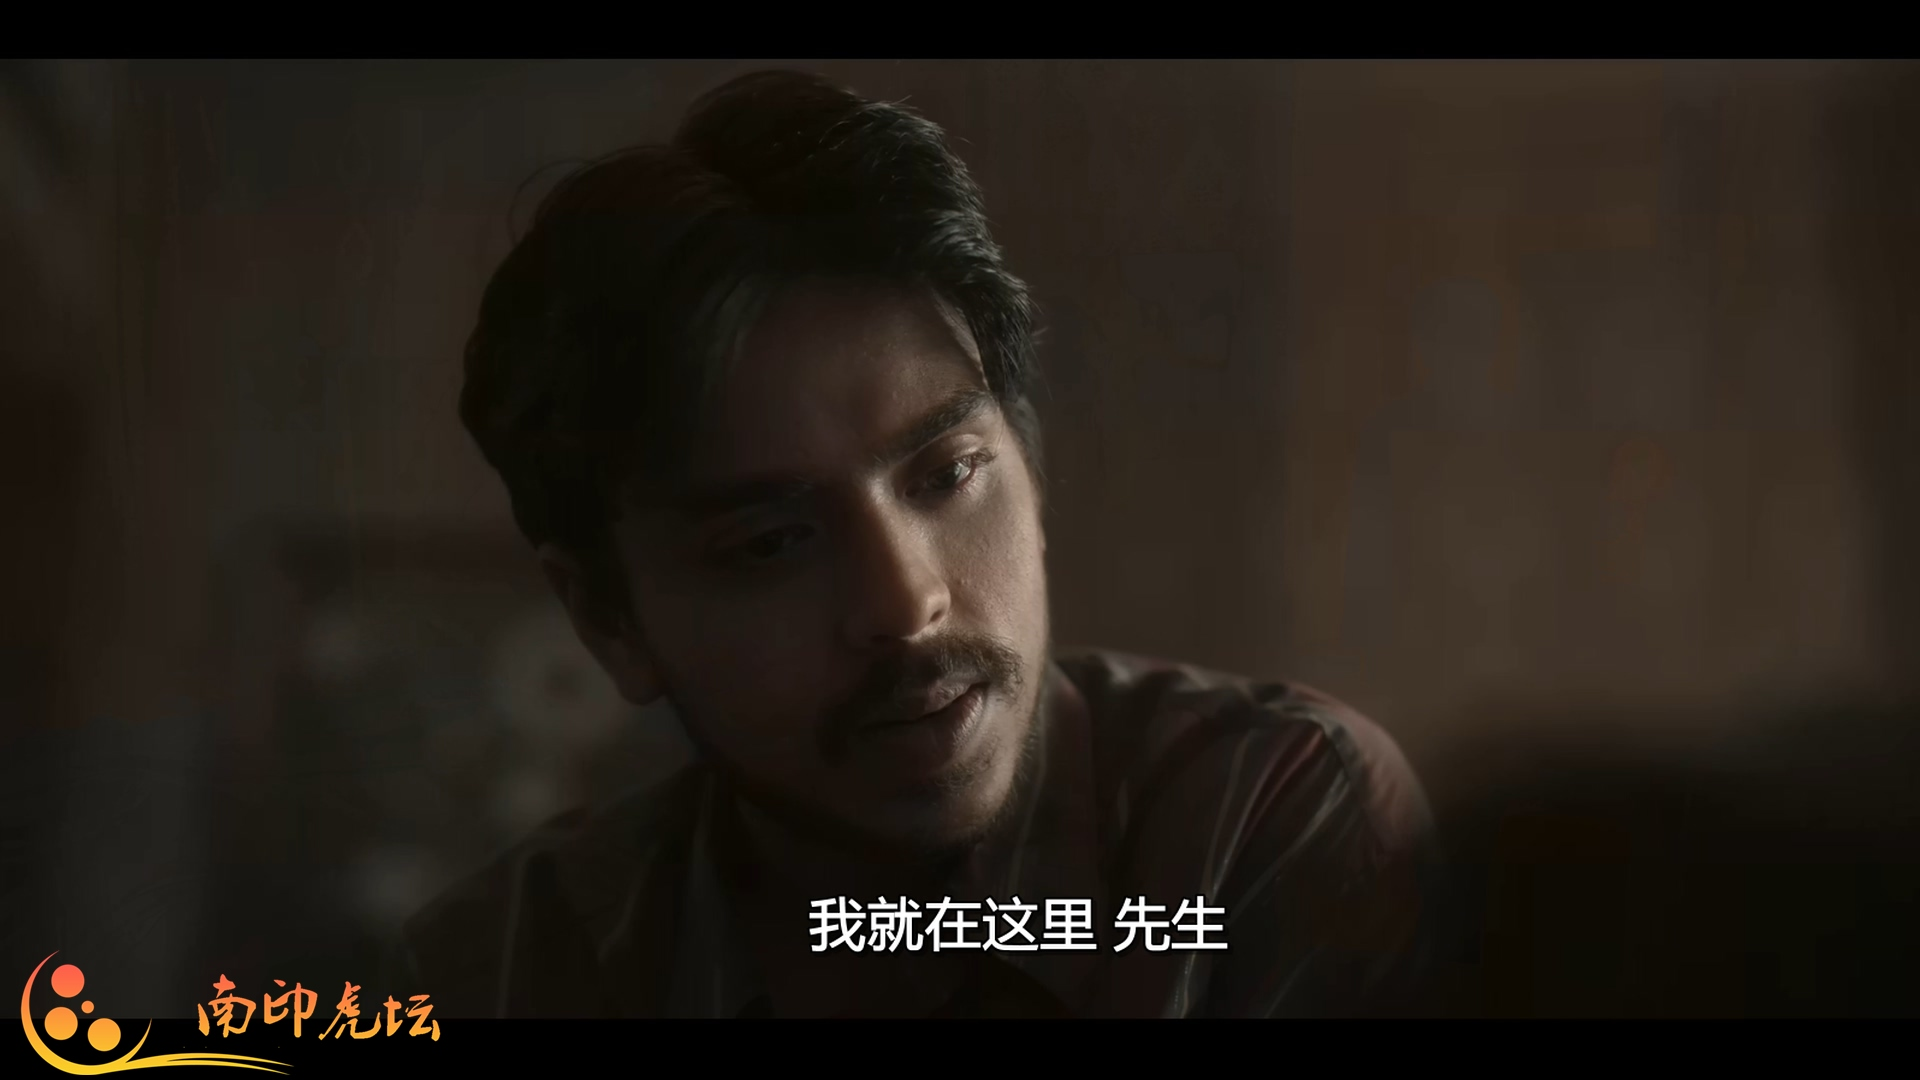 【南印虎坛】2021 白虎 The White Tiger WEB-DL AC3 5.1 外挂中文字幕.mkv_20210311_1.jpg